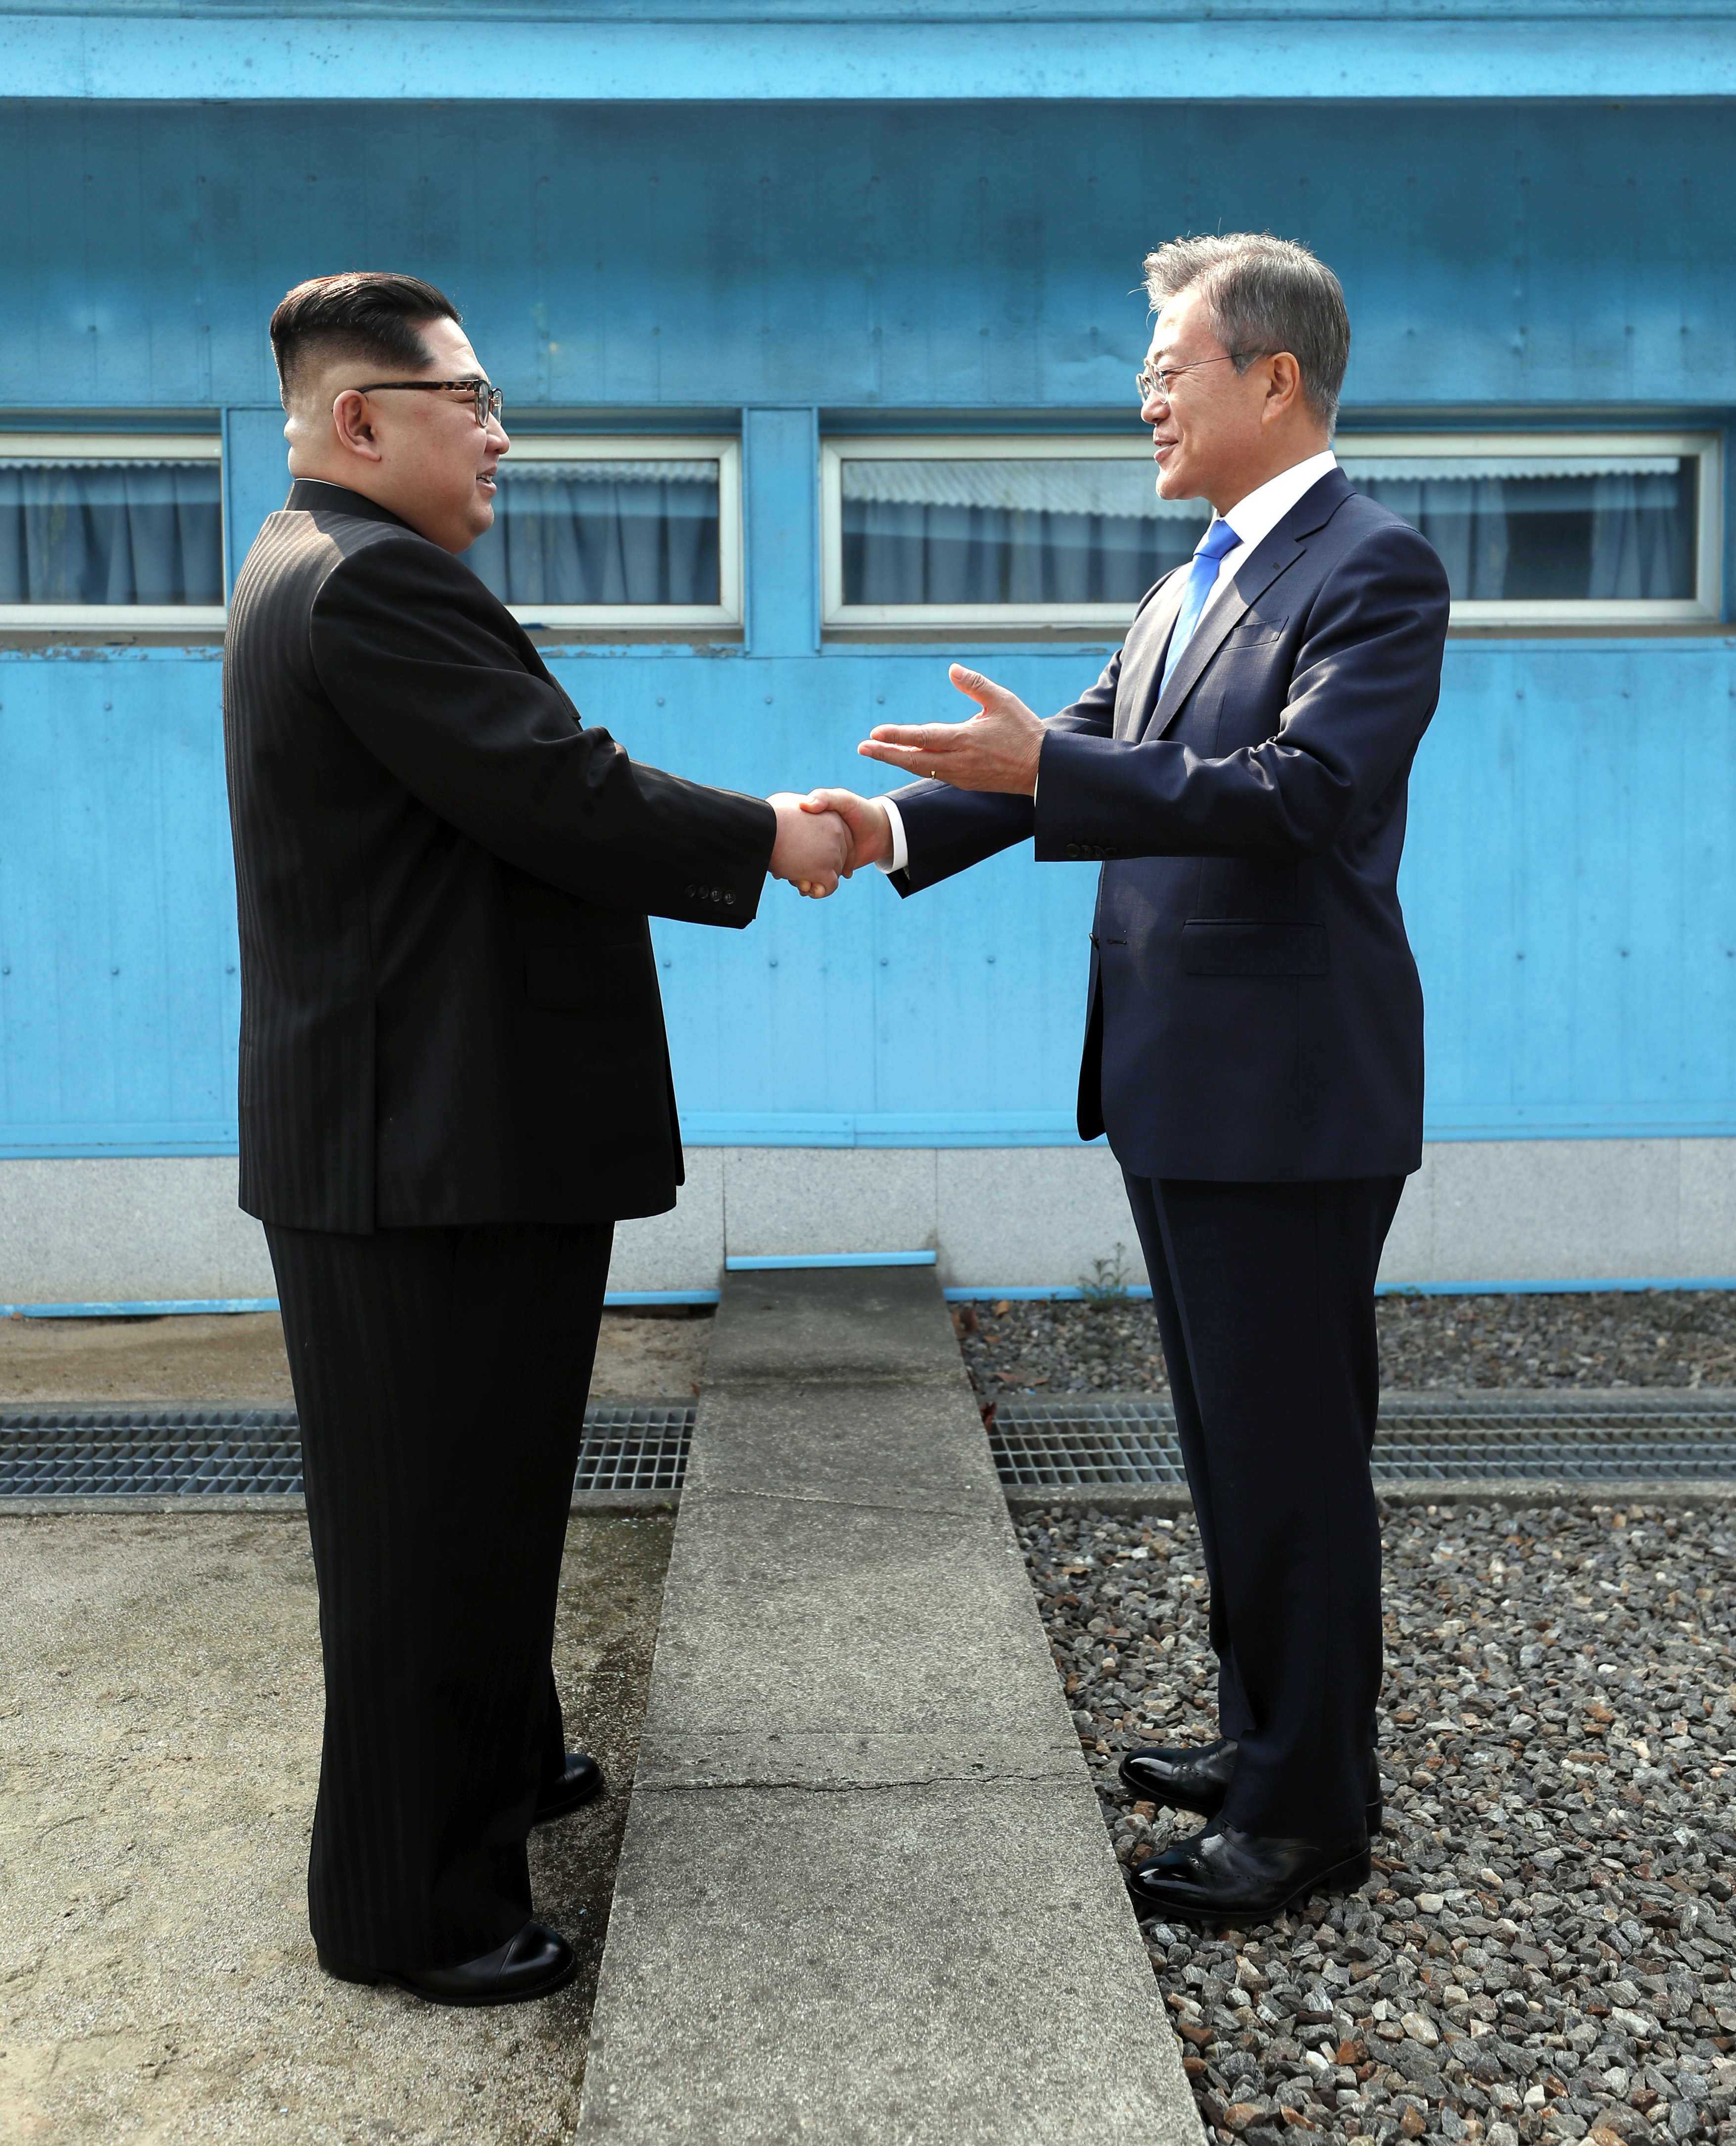 PANMUNJOM, SOUTH KOREA - APRIL 27: North Korean Leader Kim Jong Un (L) and South Korean President Moon Jae-in (R) shake hands over the military demarcation line upon meeting for the Inter-Korean Summit on April 27, 2018 in Panmunjom, South Korea. Kim and Moon meet at the border today for the third-ever inter-Korean summit talks after the 1945 division of the peninsula, and first since 2007 between then President Roh Moo-hyun of South Korea and Leader Kim Jong-il of North Korea. (Photo by Pool/Getty Images)